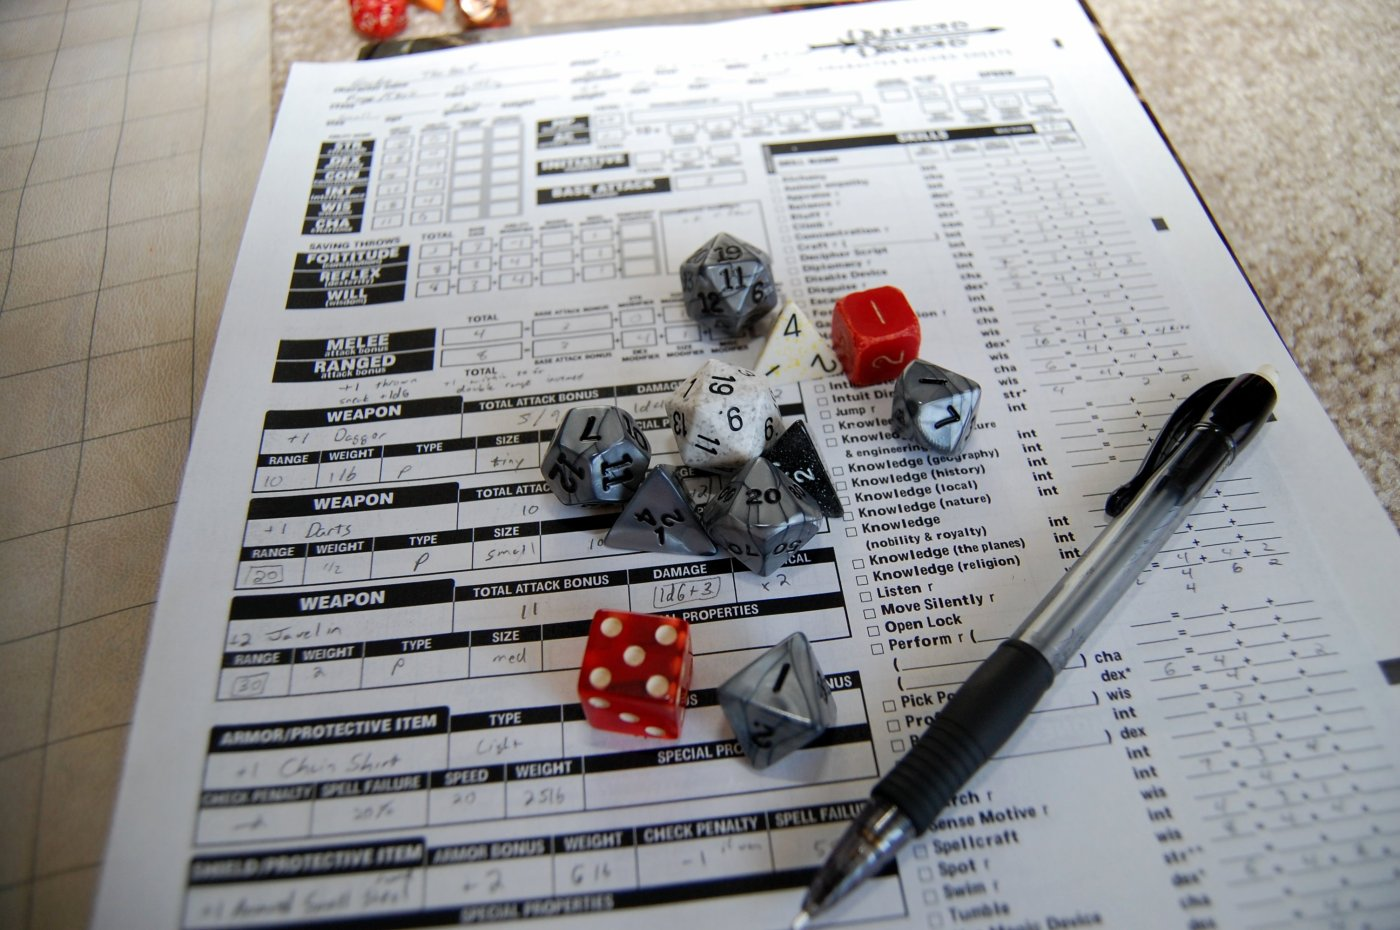 Roleplaying character sheet, dice, and a pen. Image by James Jones on Wikimedia Commons.